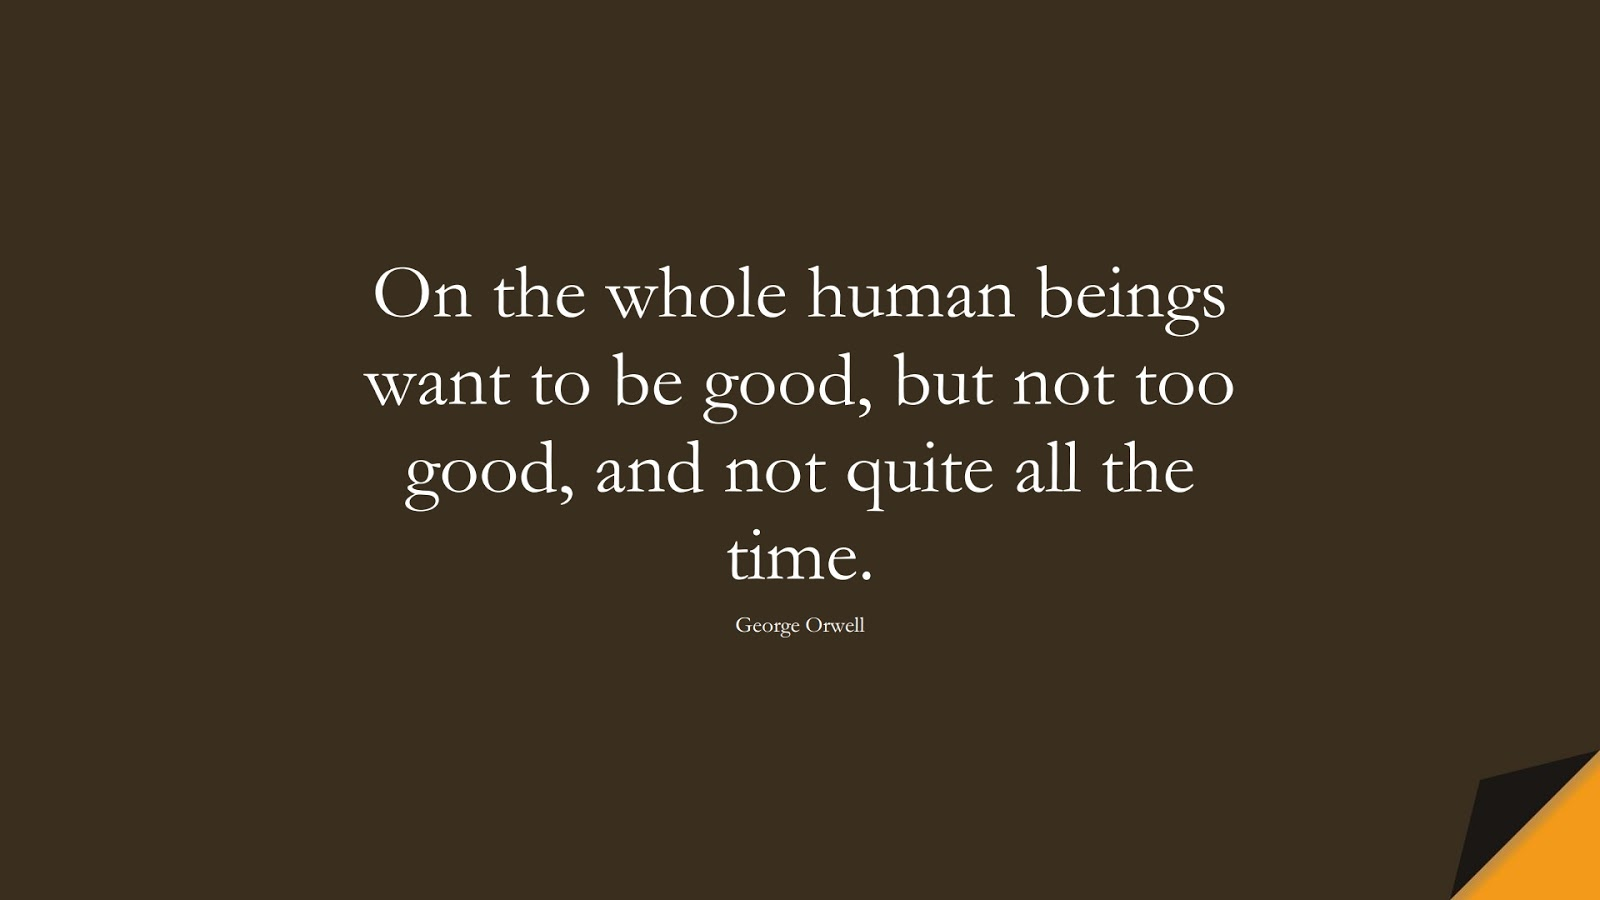 On the whole human beings want to be good, but not too good, and not quite all the time. (George Orwell);  #HumanityQuotes